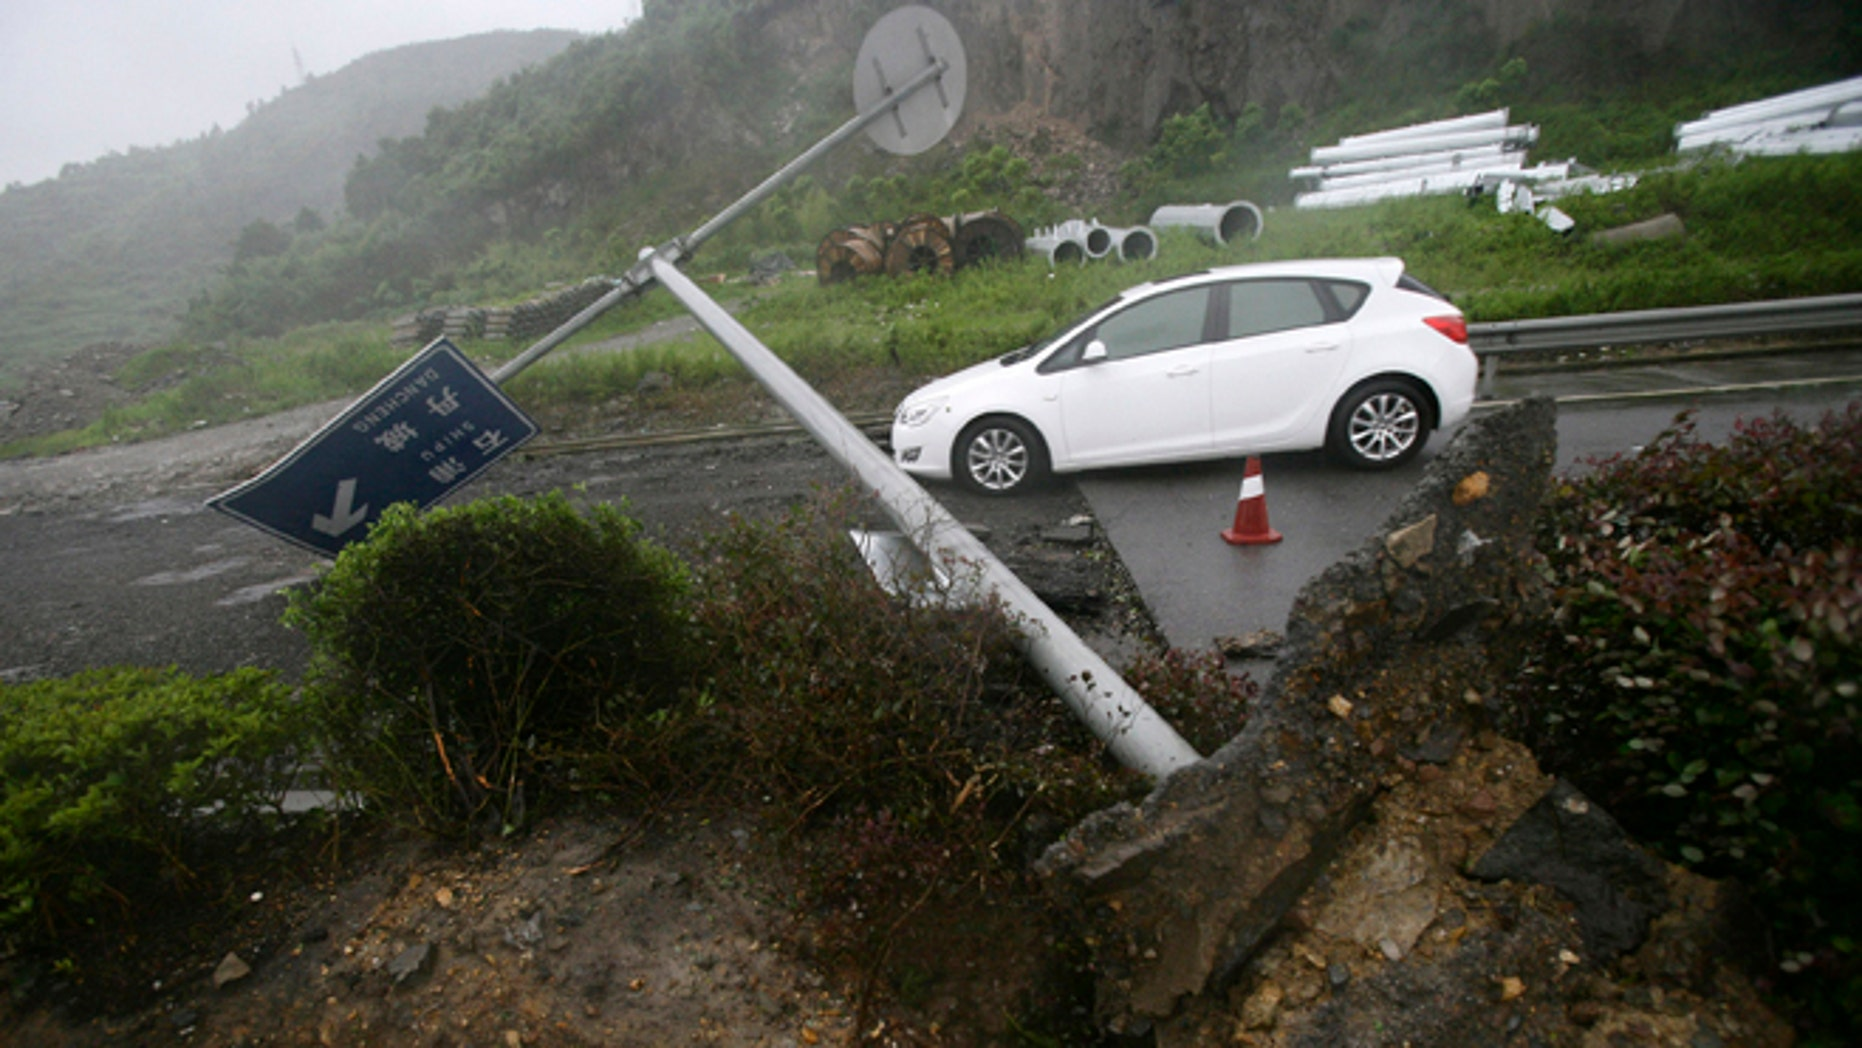 Aug. 8, 2012: In this photo released by China's Xinhua News Agency, a road sign is blown down in Xiangshan County, east China's Zhejiang Province.